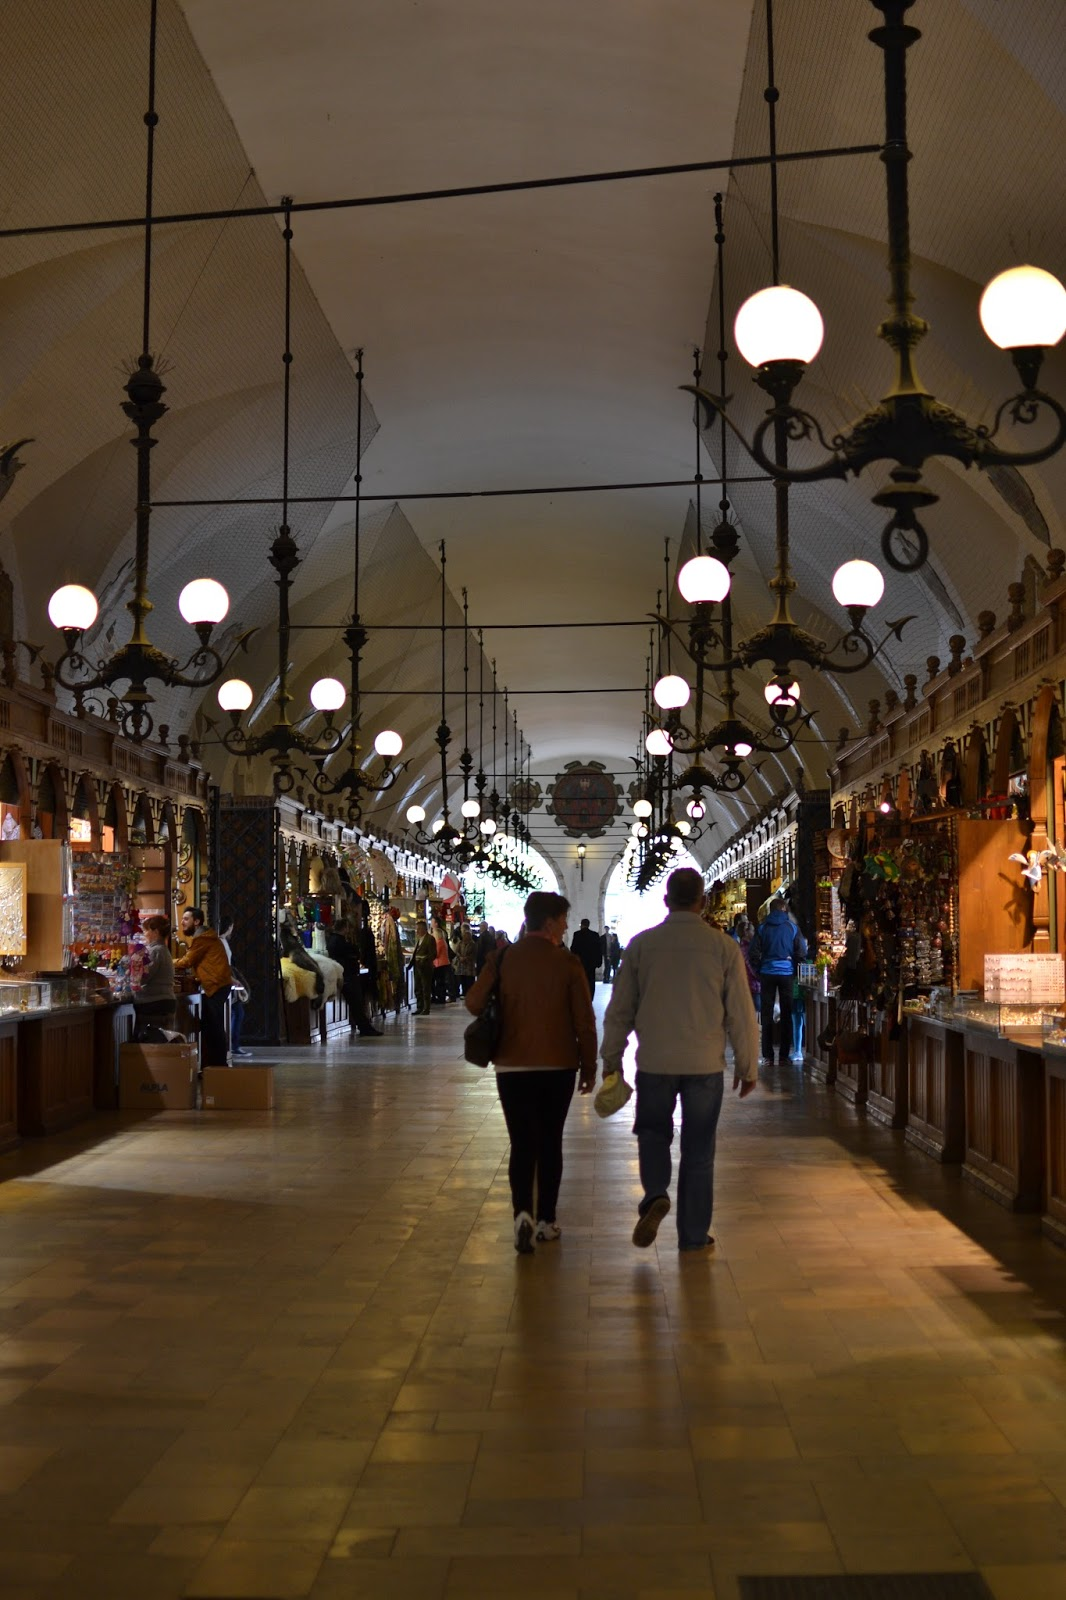 krakow, poland, travel, polski, zapiekanka, rynek, st mary's basillica, Auschwitz, zloty, tram, pierogi, Wawel Cathedral, Wawel Royal Castle, Planty Park, Franciscan Church, Kosciol Franciszkanow, St. Florian's Gate, Ulica Florianska, cloth hall, Sukienice, Church of St Peter and St Paul, The Barbican, Grunwald Monument, Town Hall tower, Kazimierz, Old Synagogue, Podgorze Jewish ghetto, Krakus mound, Oskar Schindler's Factory, Wieliczka Salt Mines, Wisla Krakow